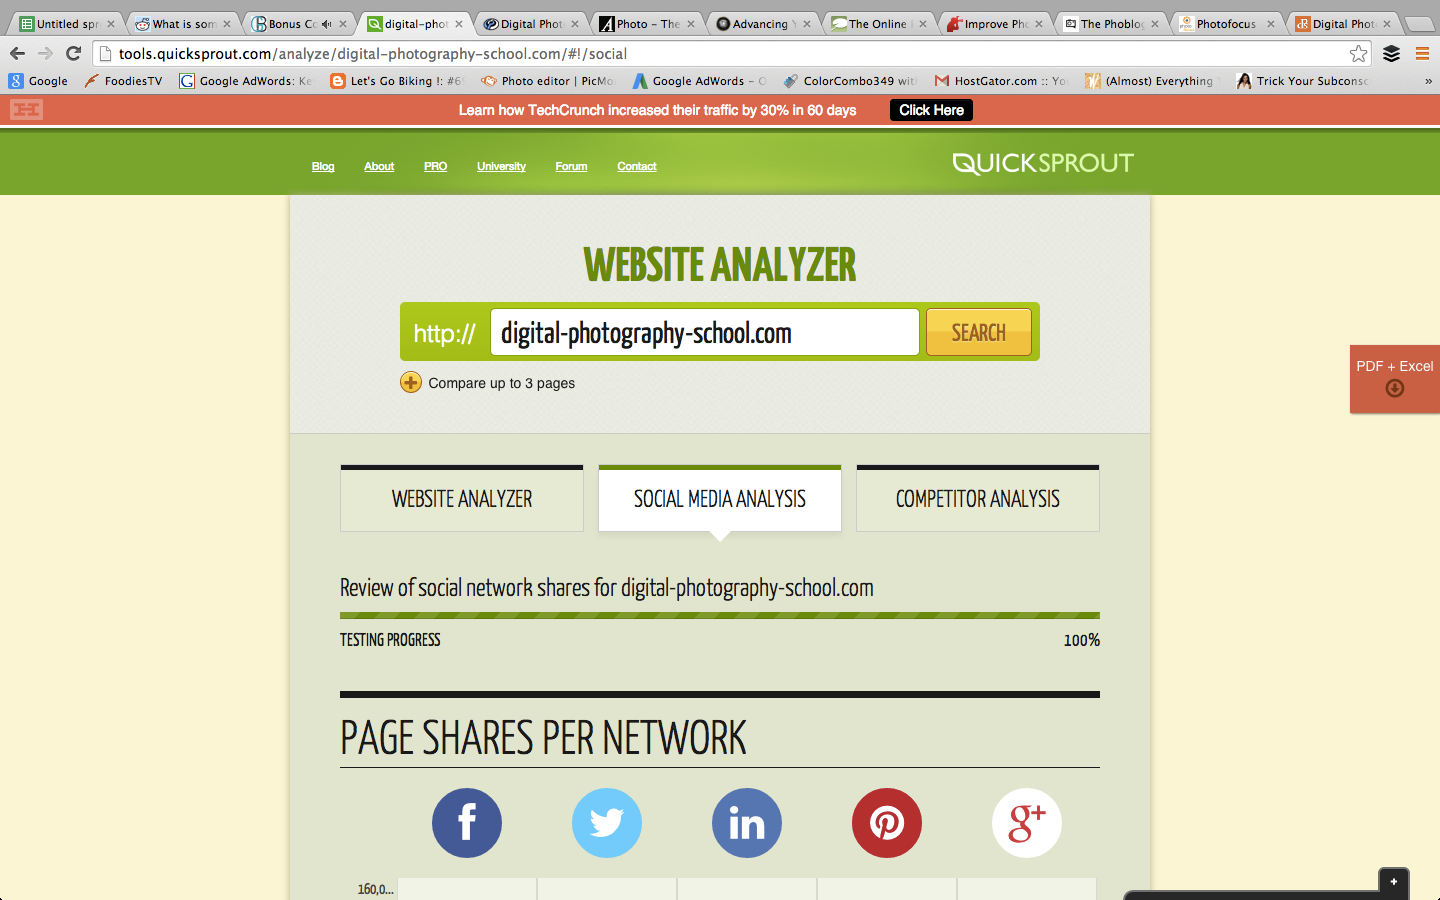 Quicksprout blog analyzer